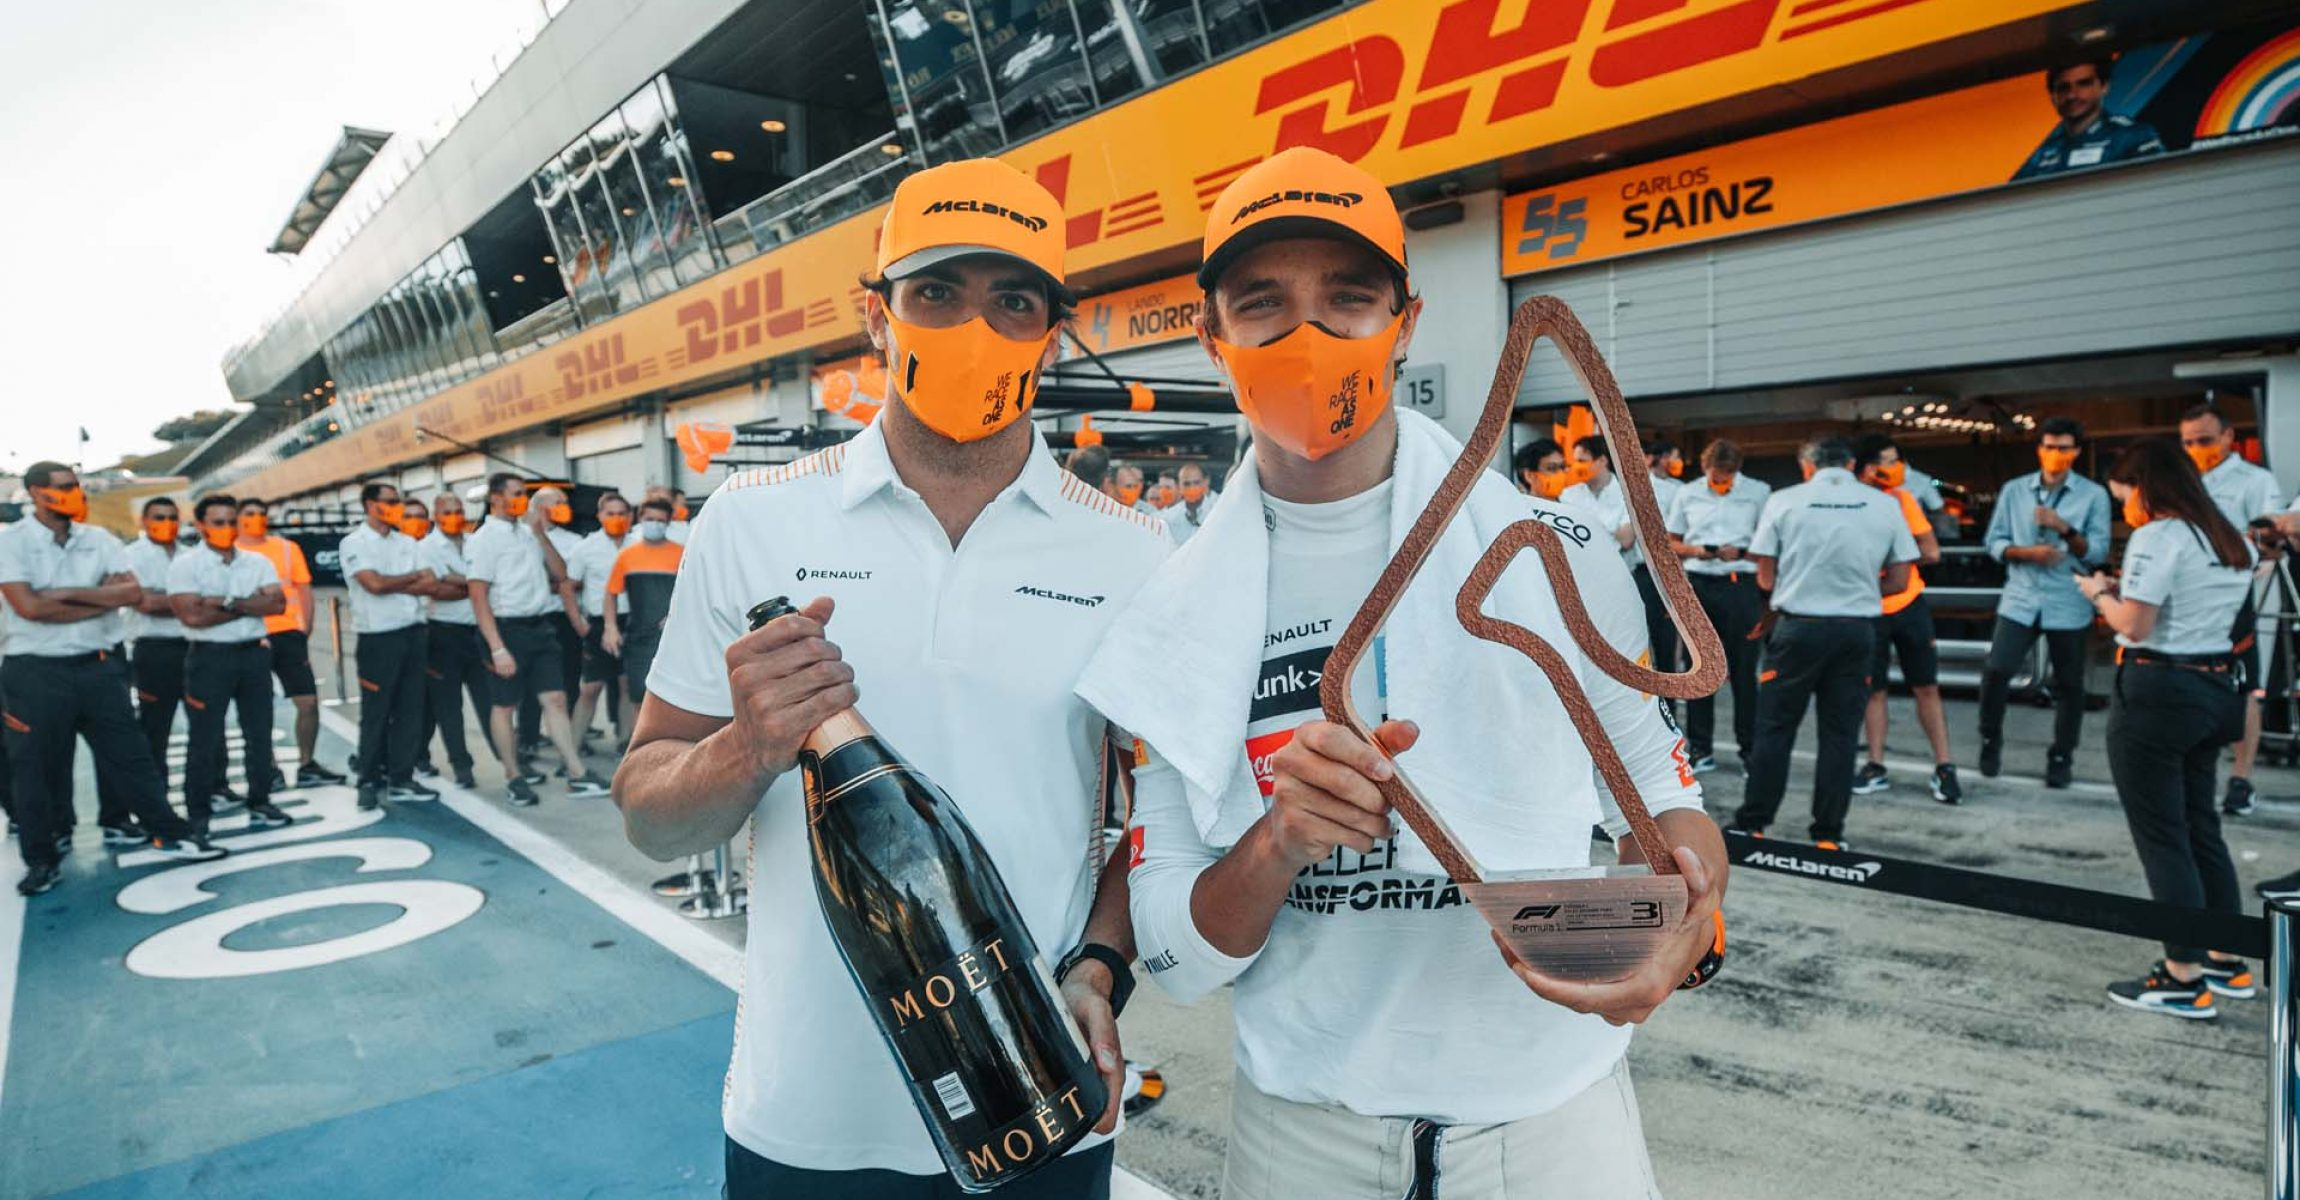 Lando Norris, McLaren, celebrates with Carlos Sainz, McLaren, champagne and his trophy after finishing on the podium